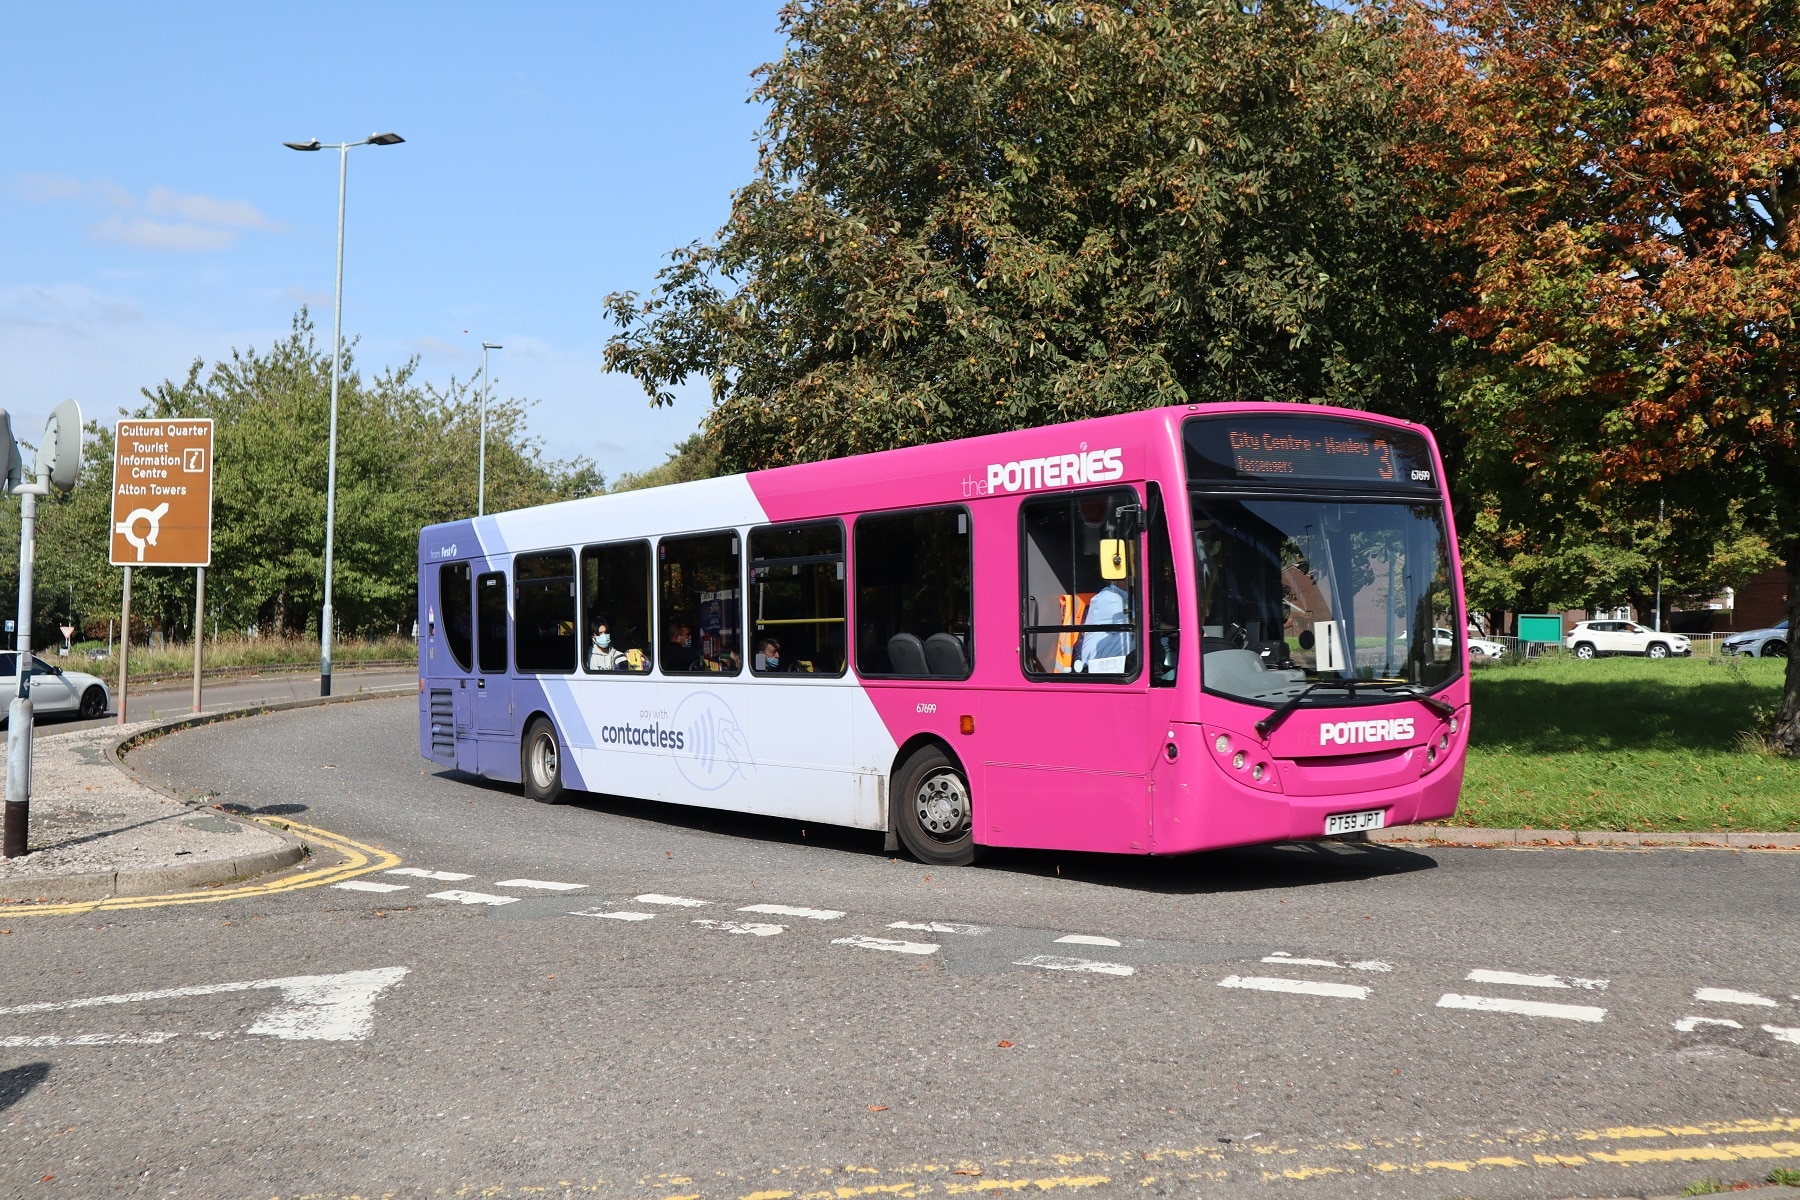 Bus patronage figures for early January 2021